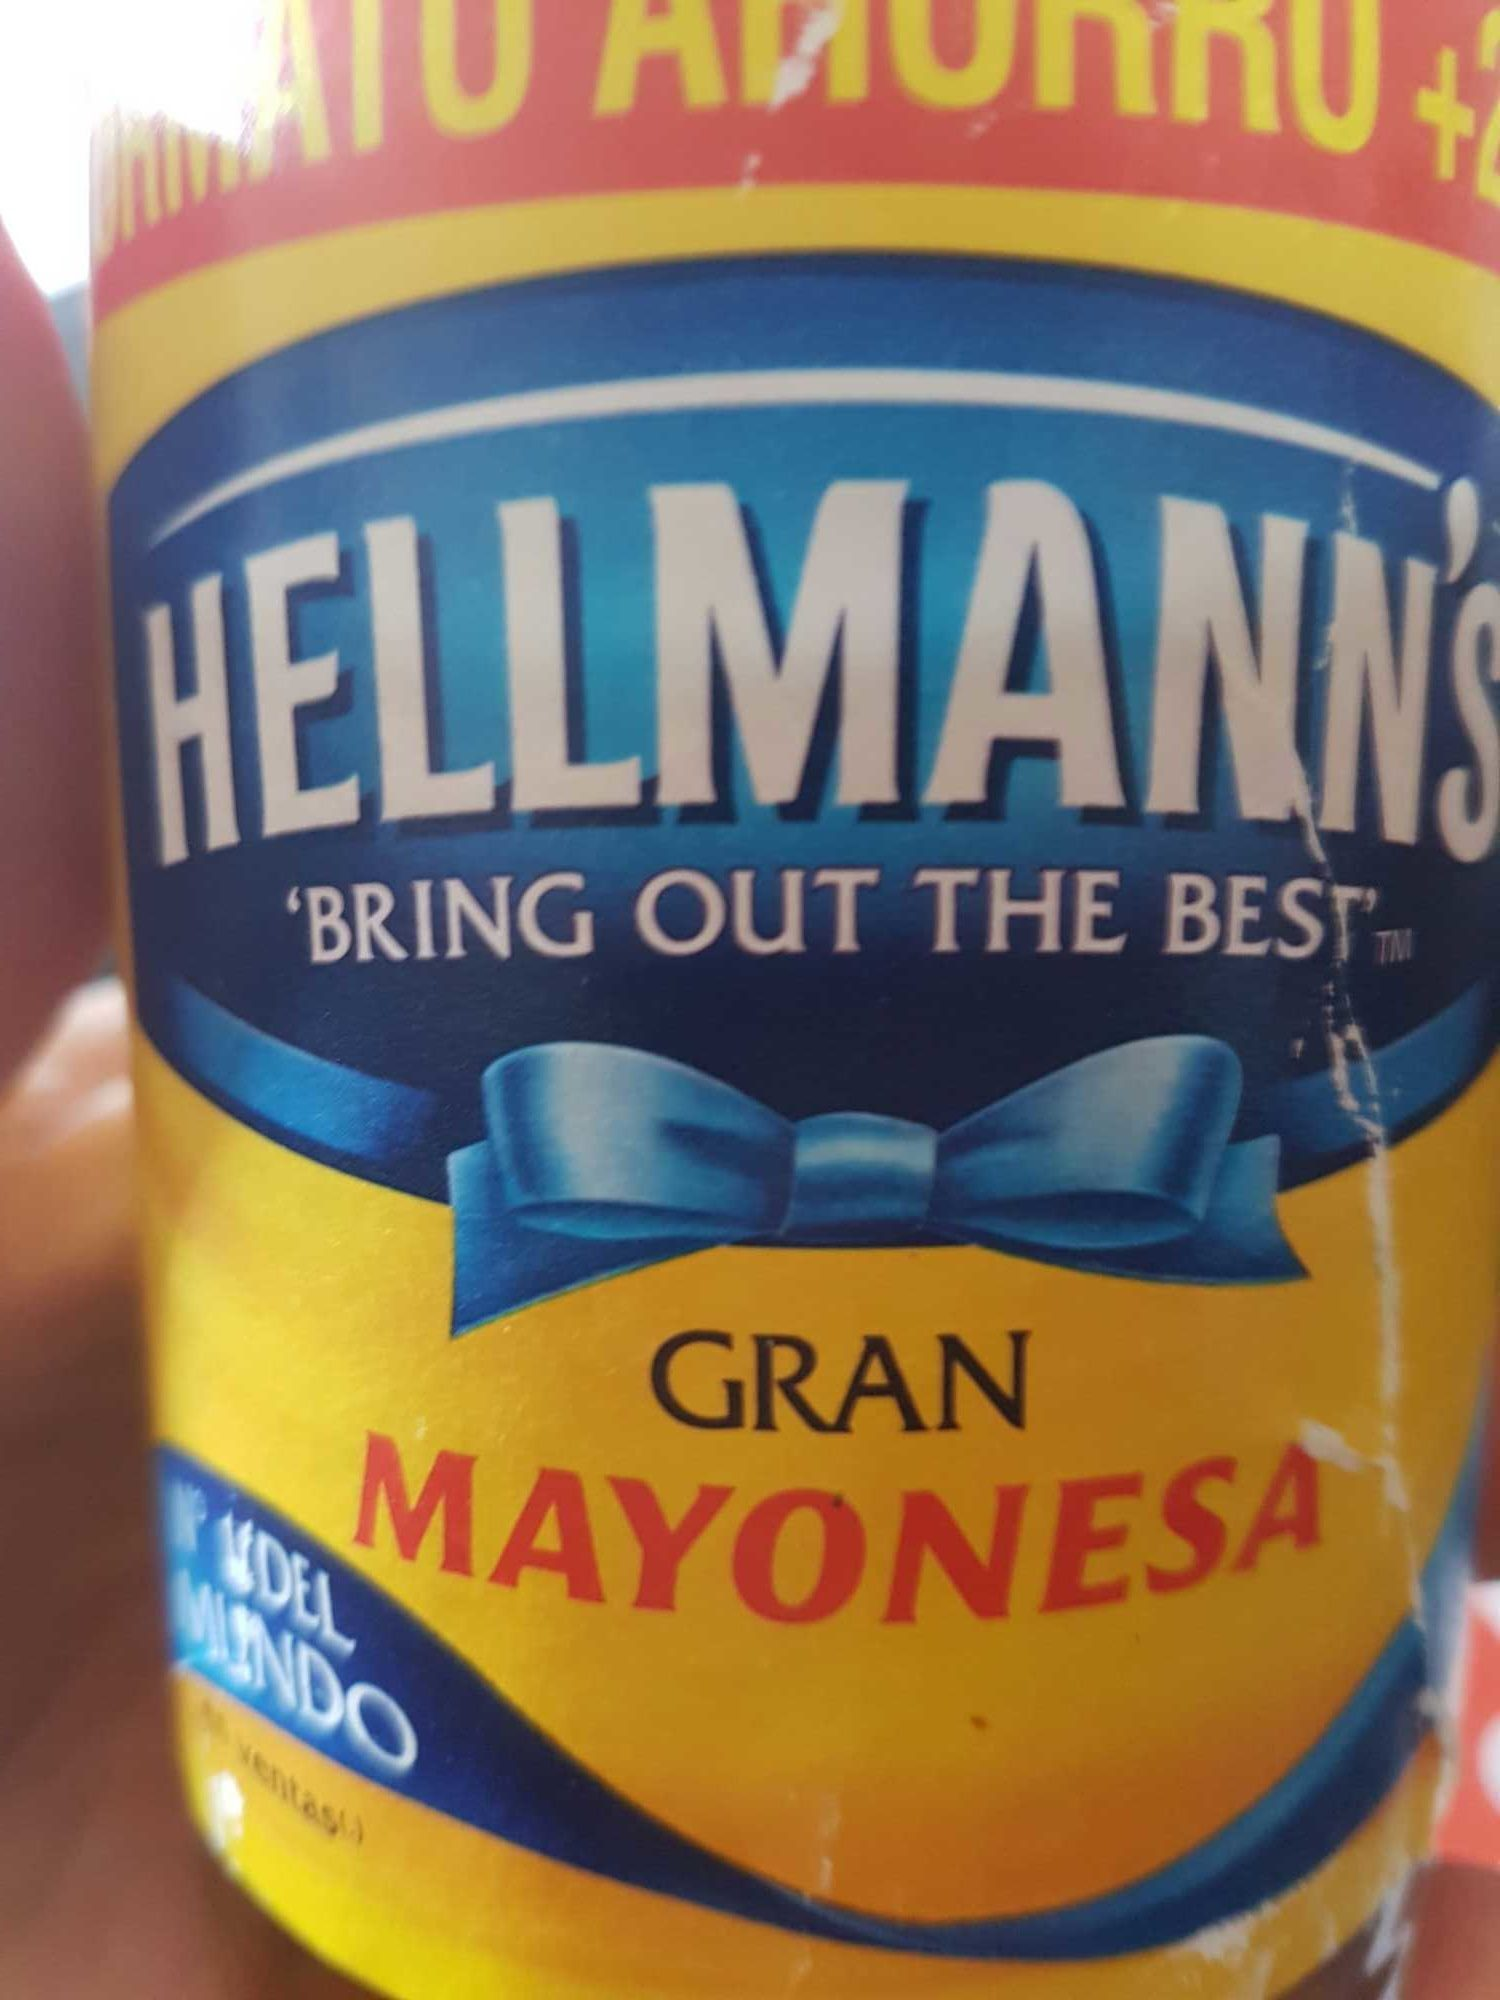 Gran mayonesa - Product - es